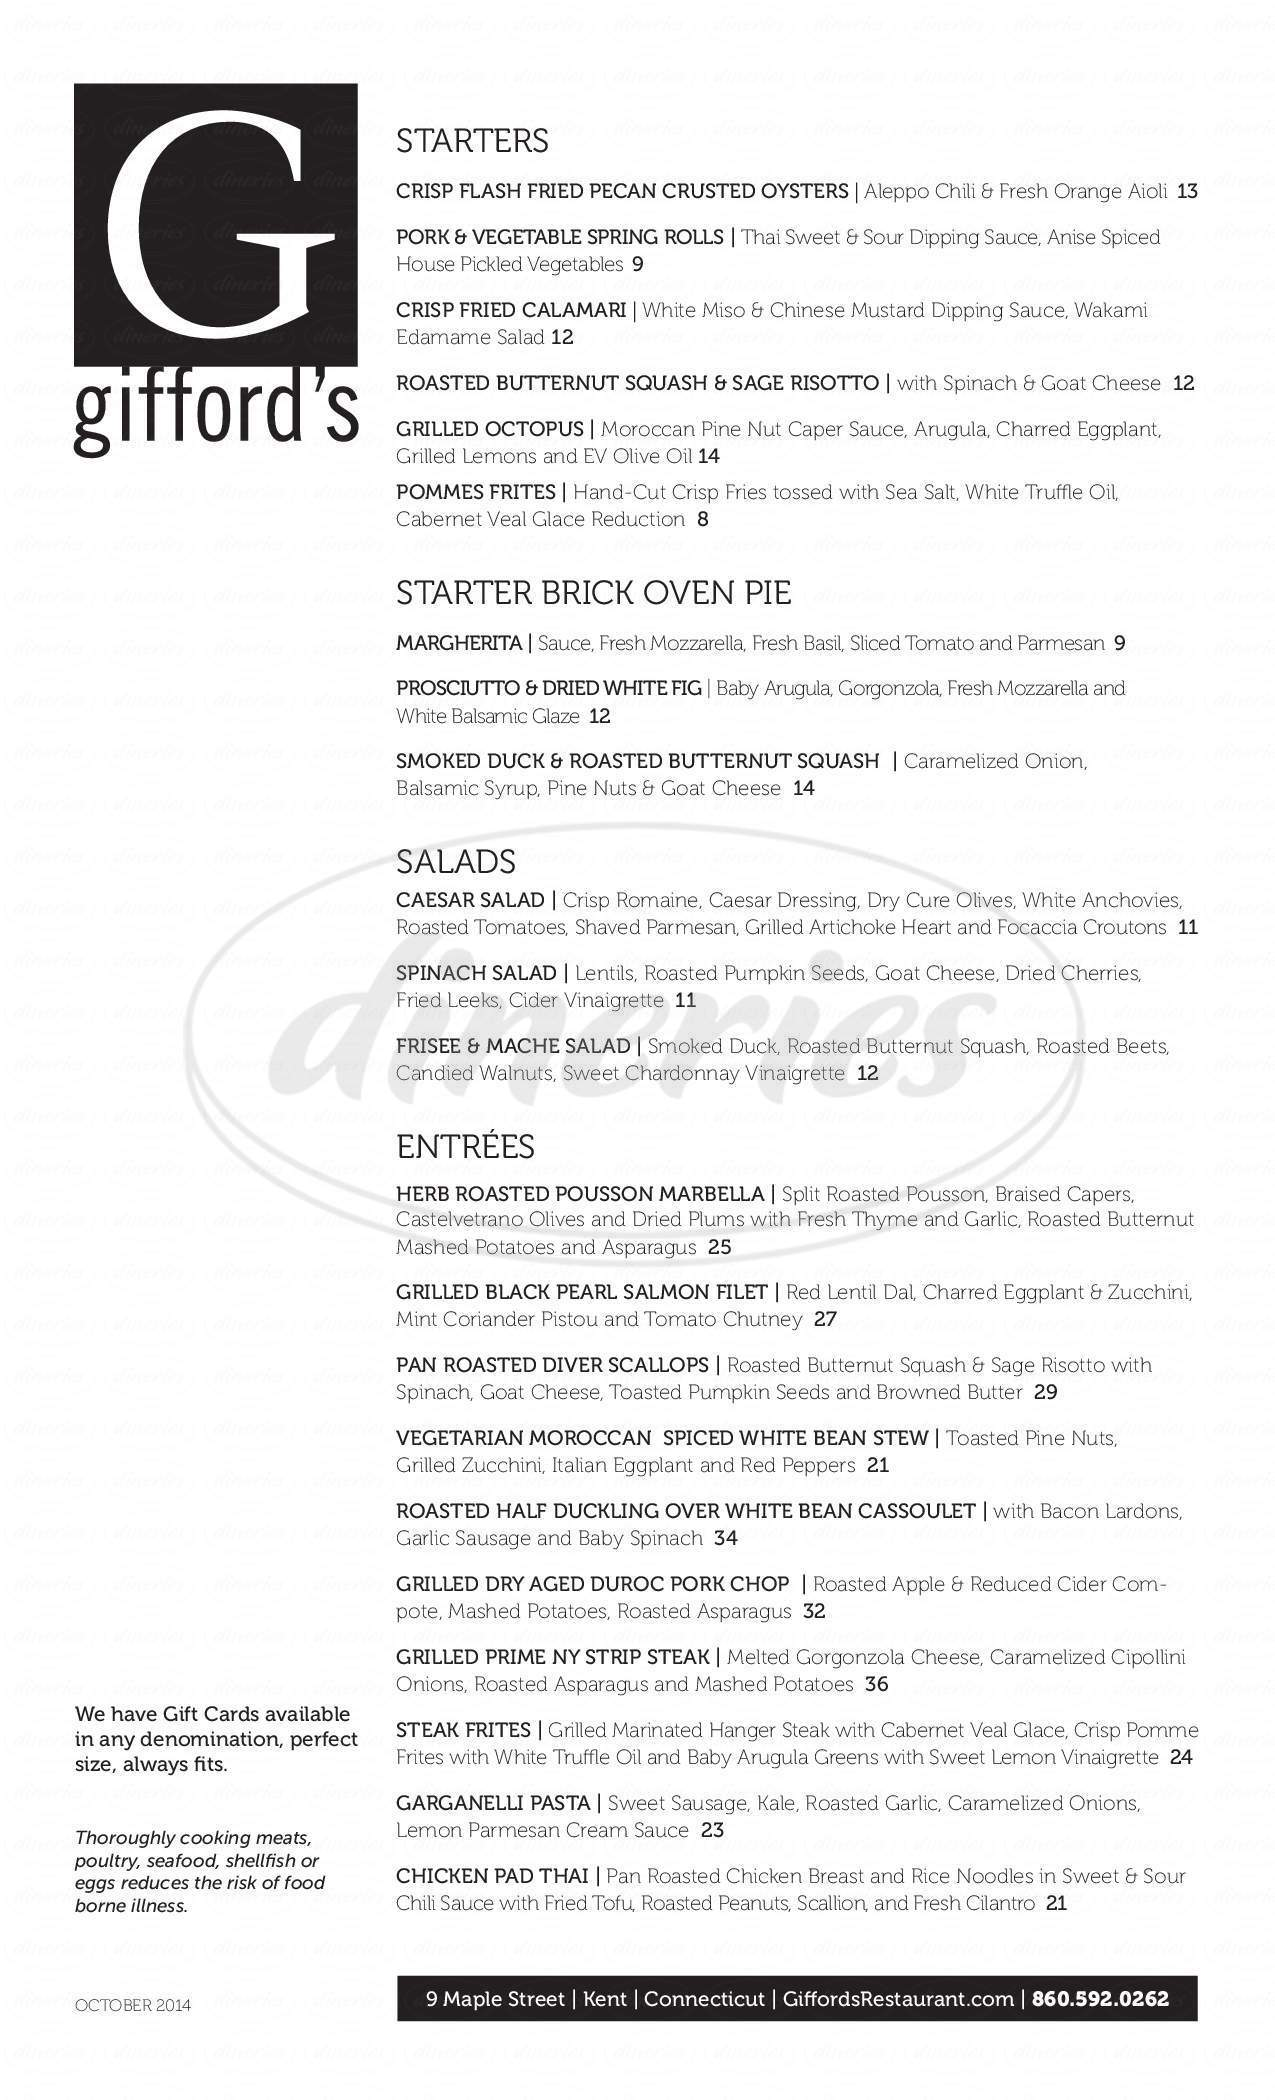 menu for Gifford's